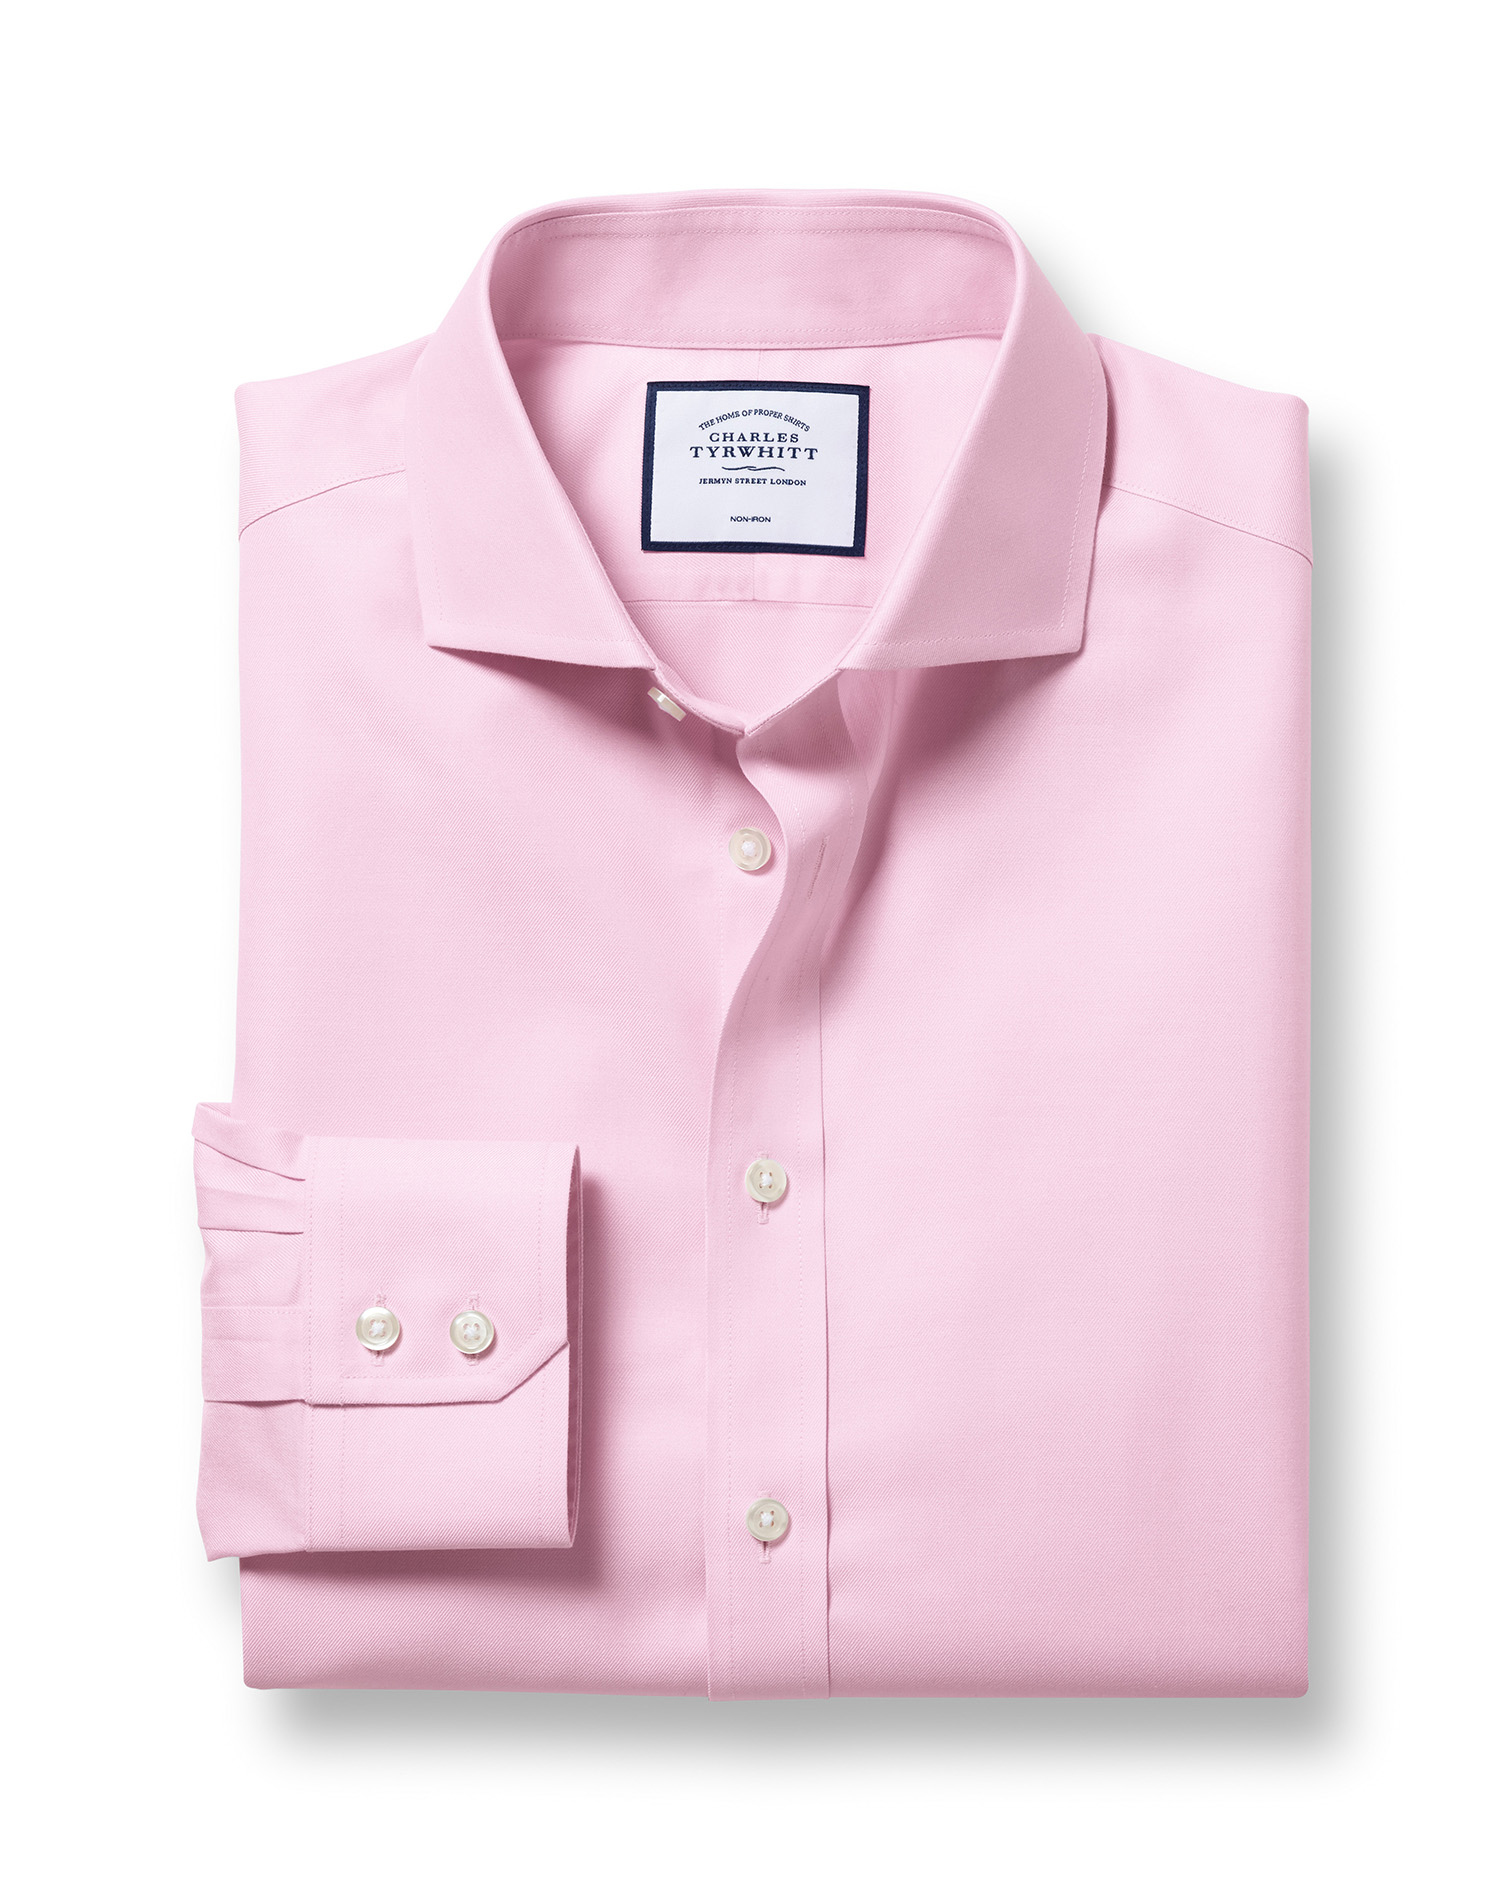 Slim Fit Pink Non-Iron Twill Cutaway Collar Cotton Formal Shirt Double Cuff Size 17.5/34 by Charles